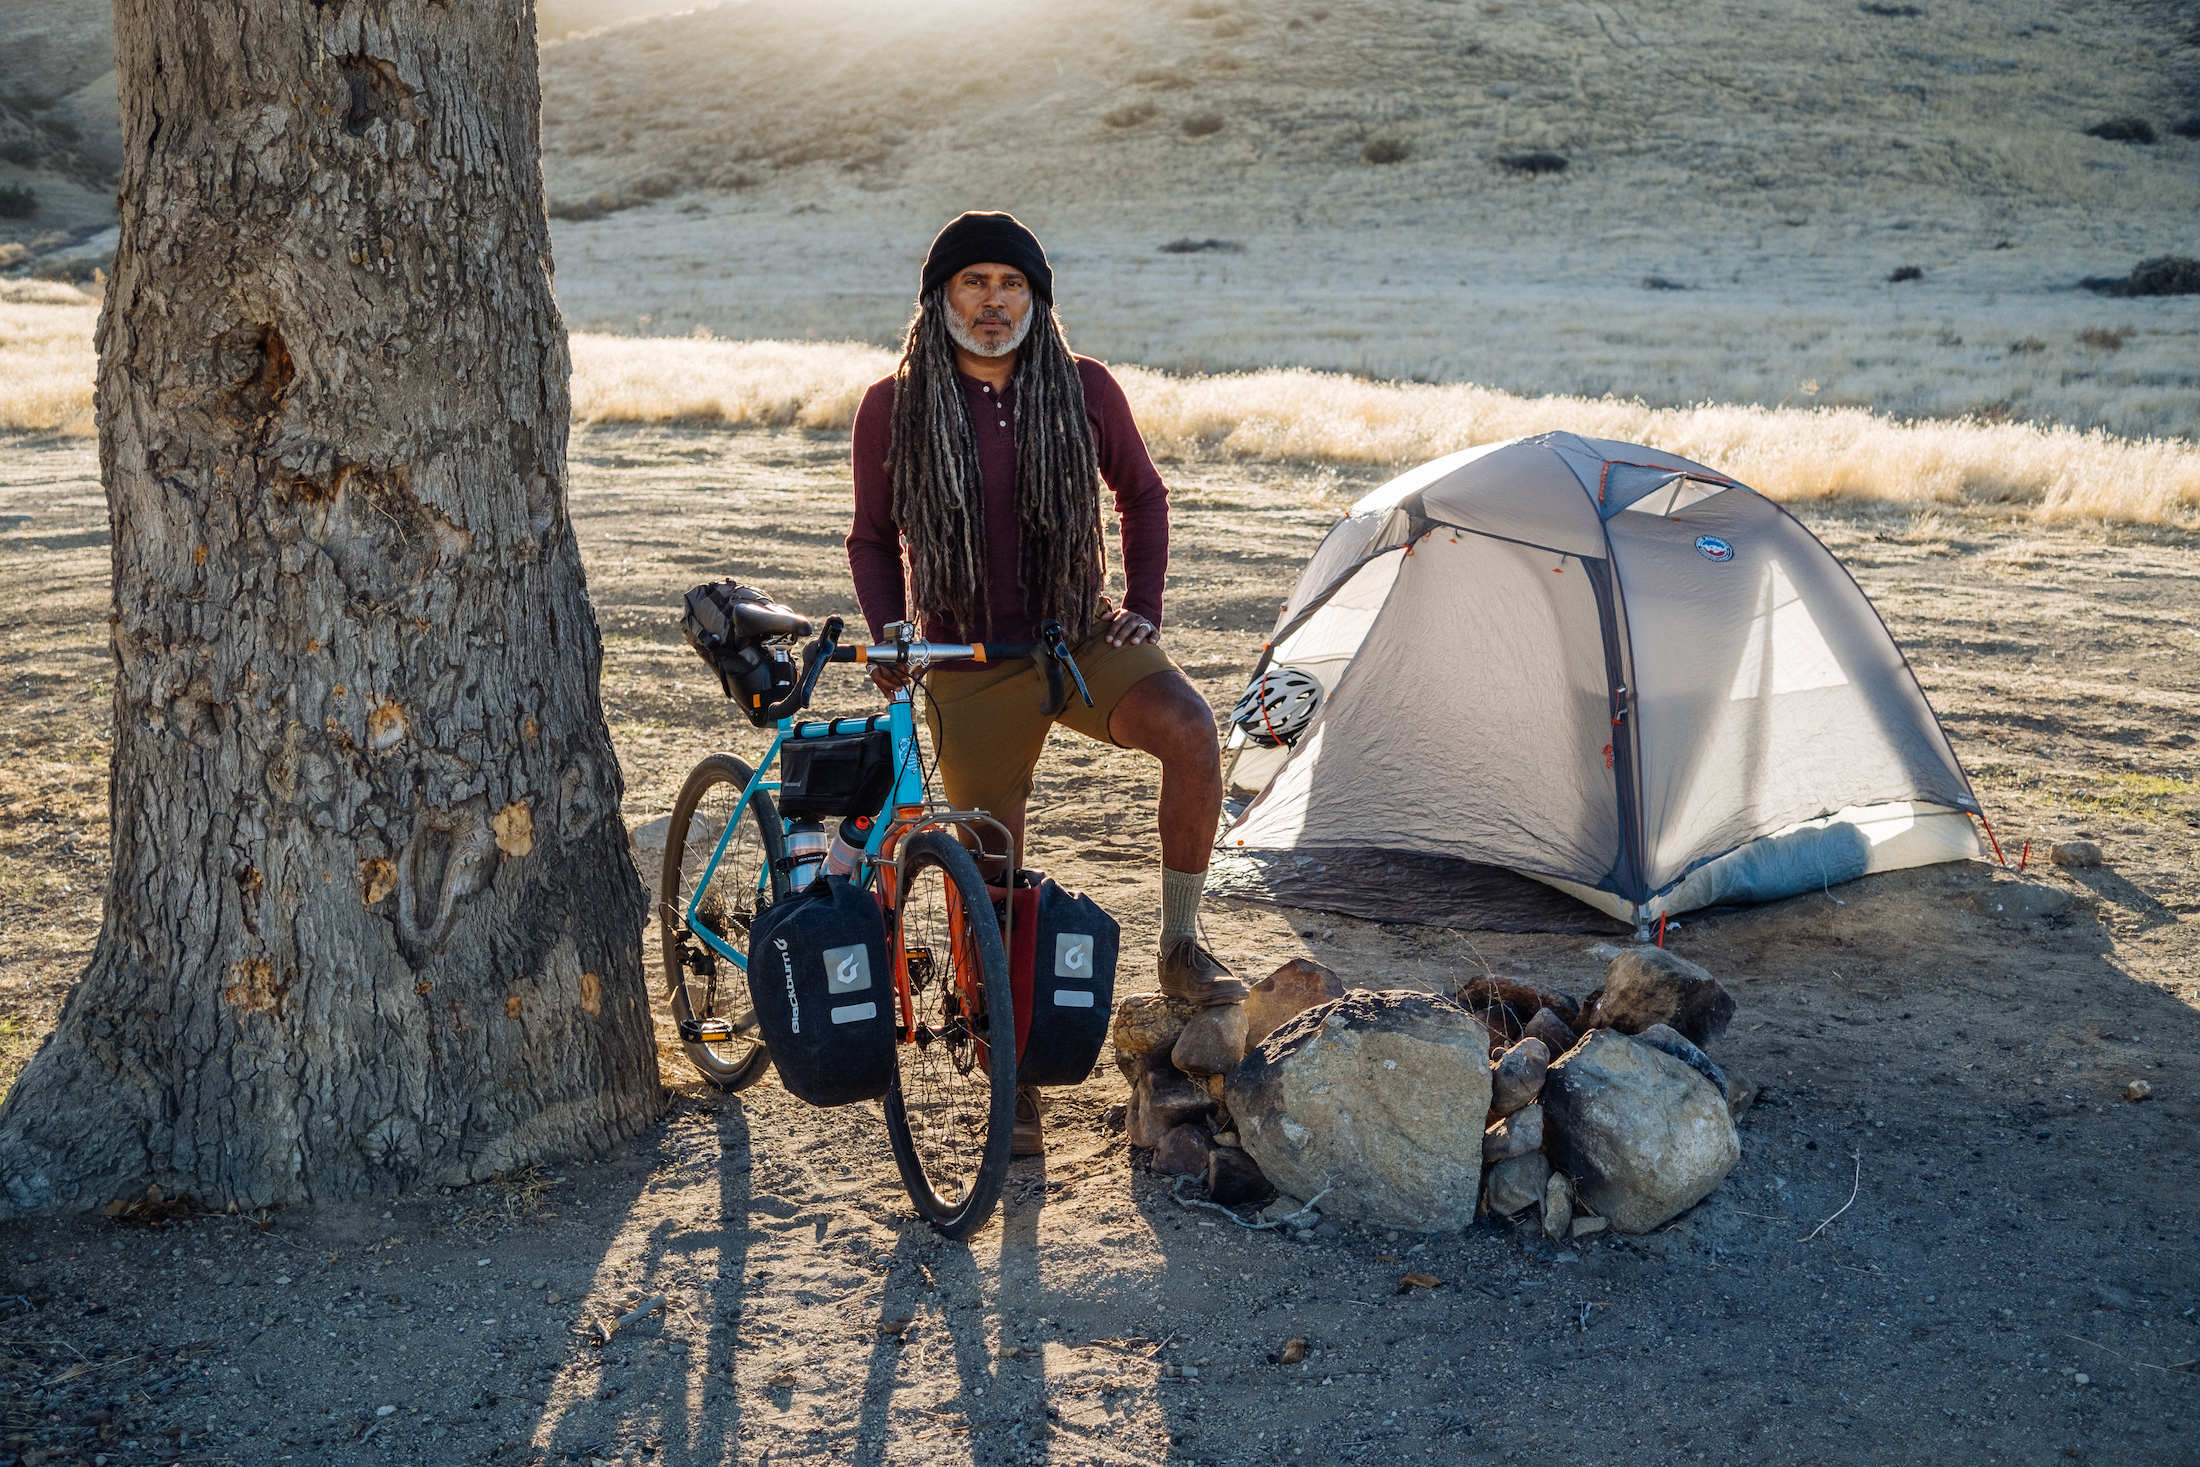 Bicycle Nomad Erick Cedeño standing next to small tent and tree with his bike